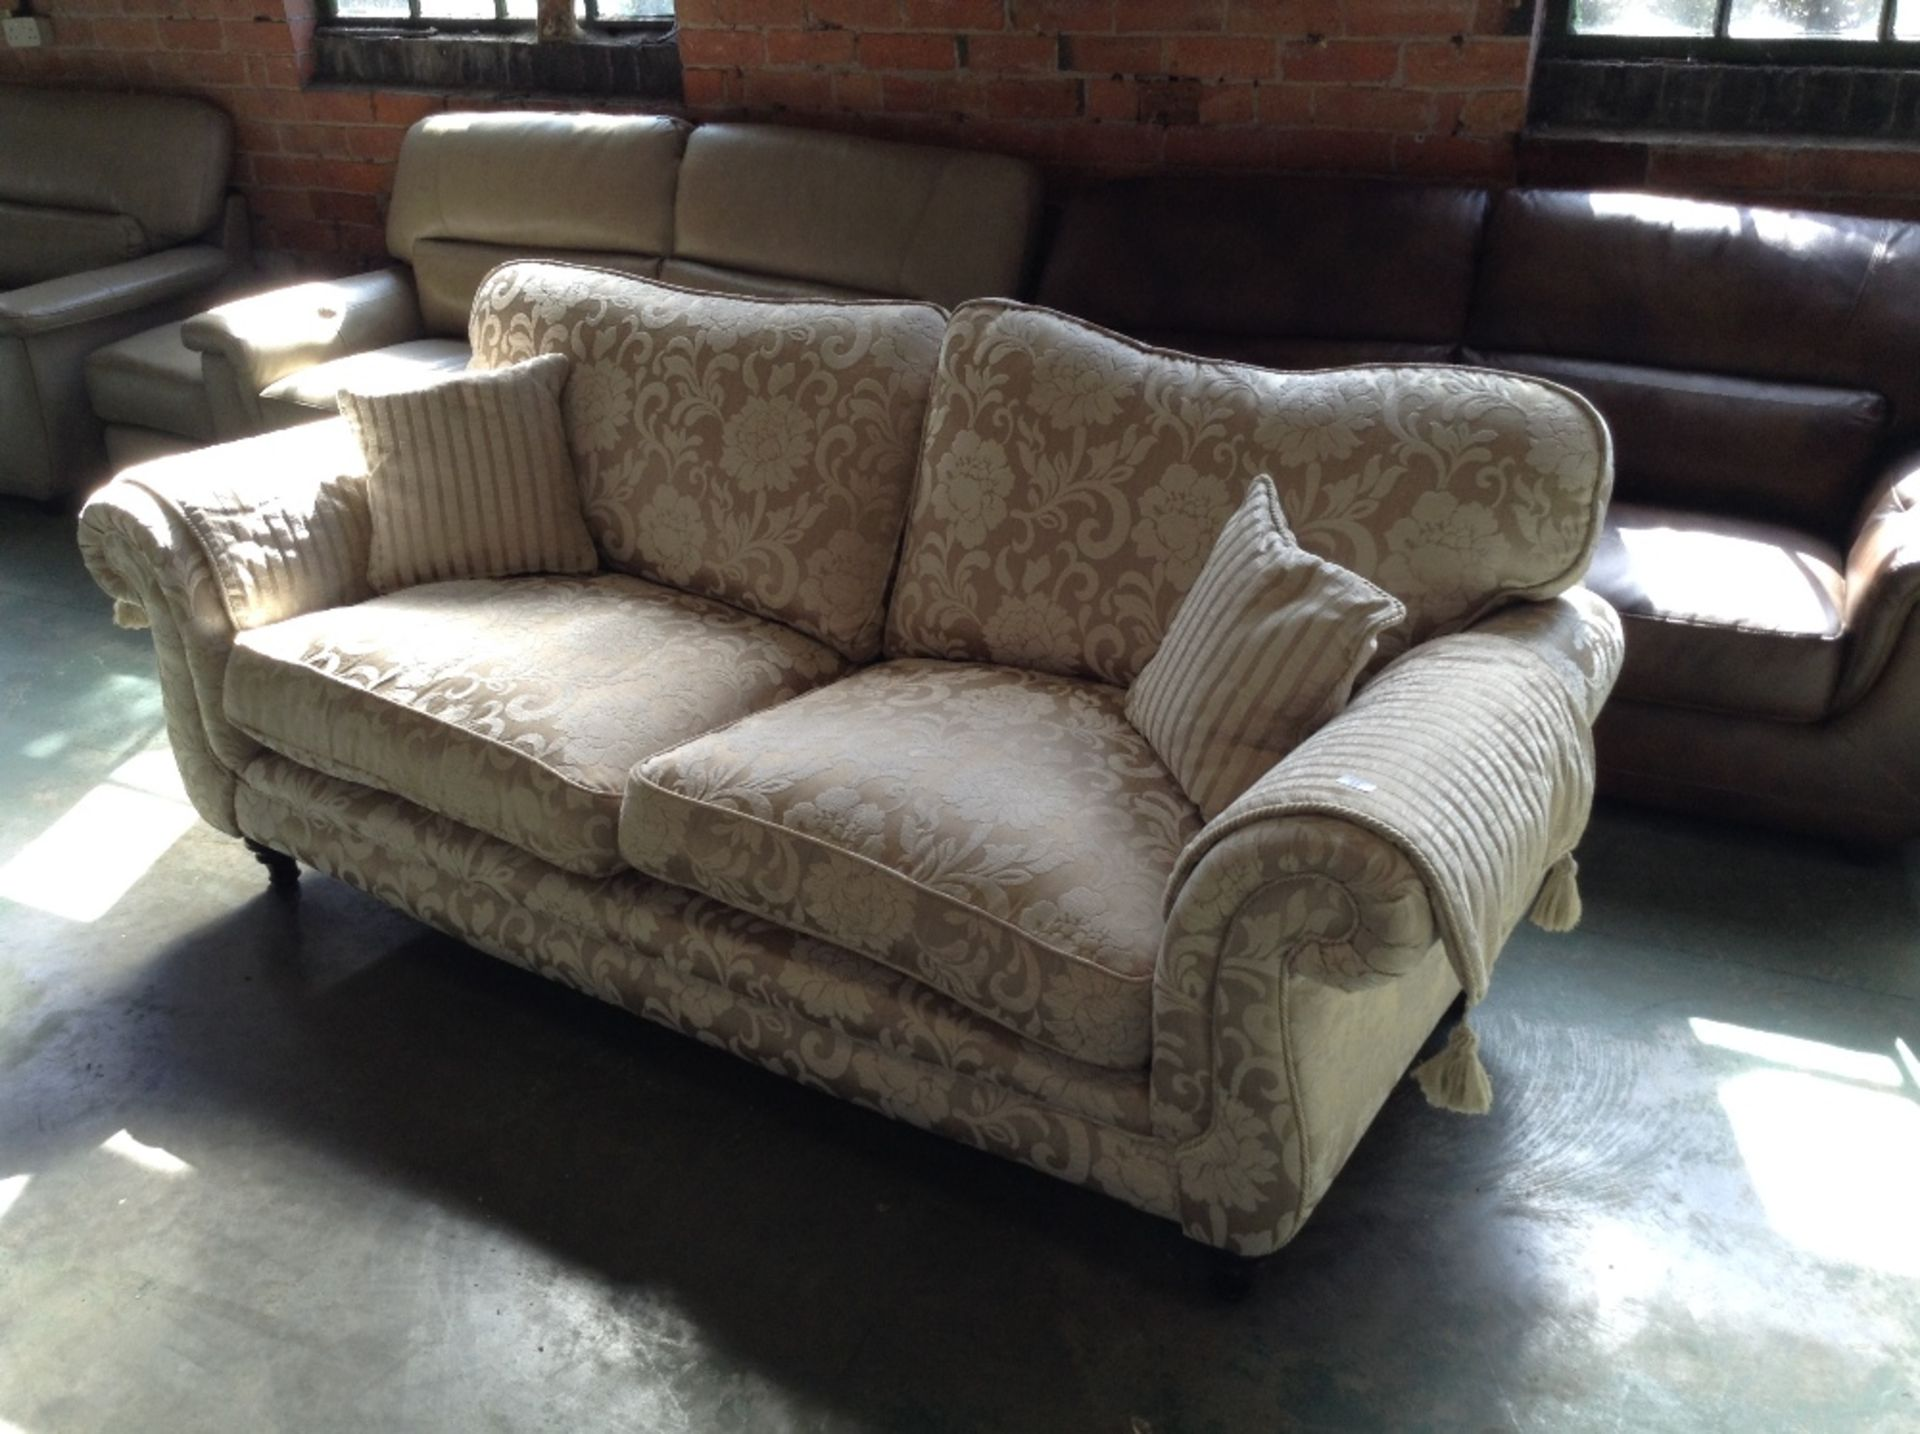 Lot 22 - NATURAL AND GOLD FLORAL PATTERNED 3 SEATER